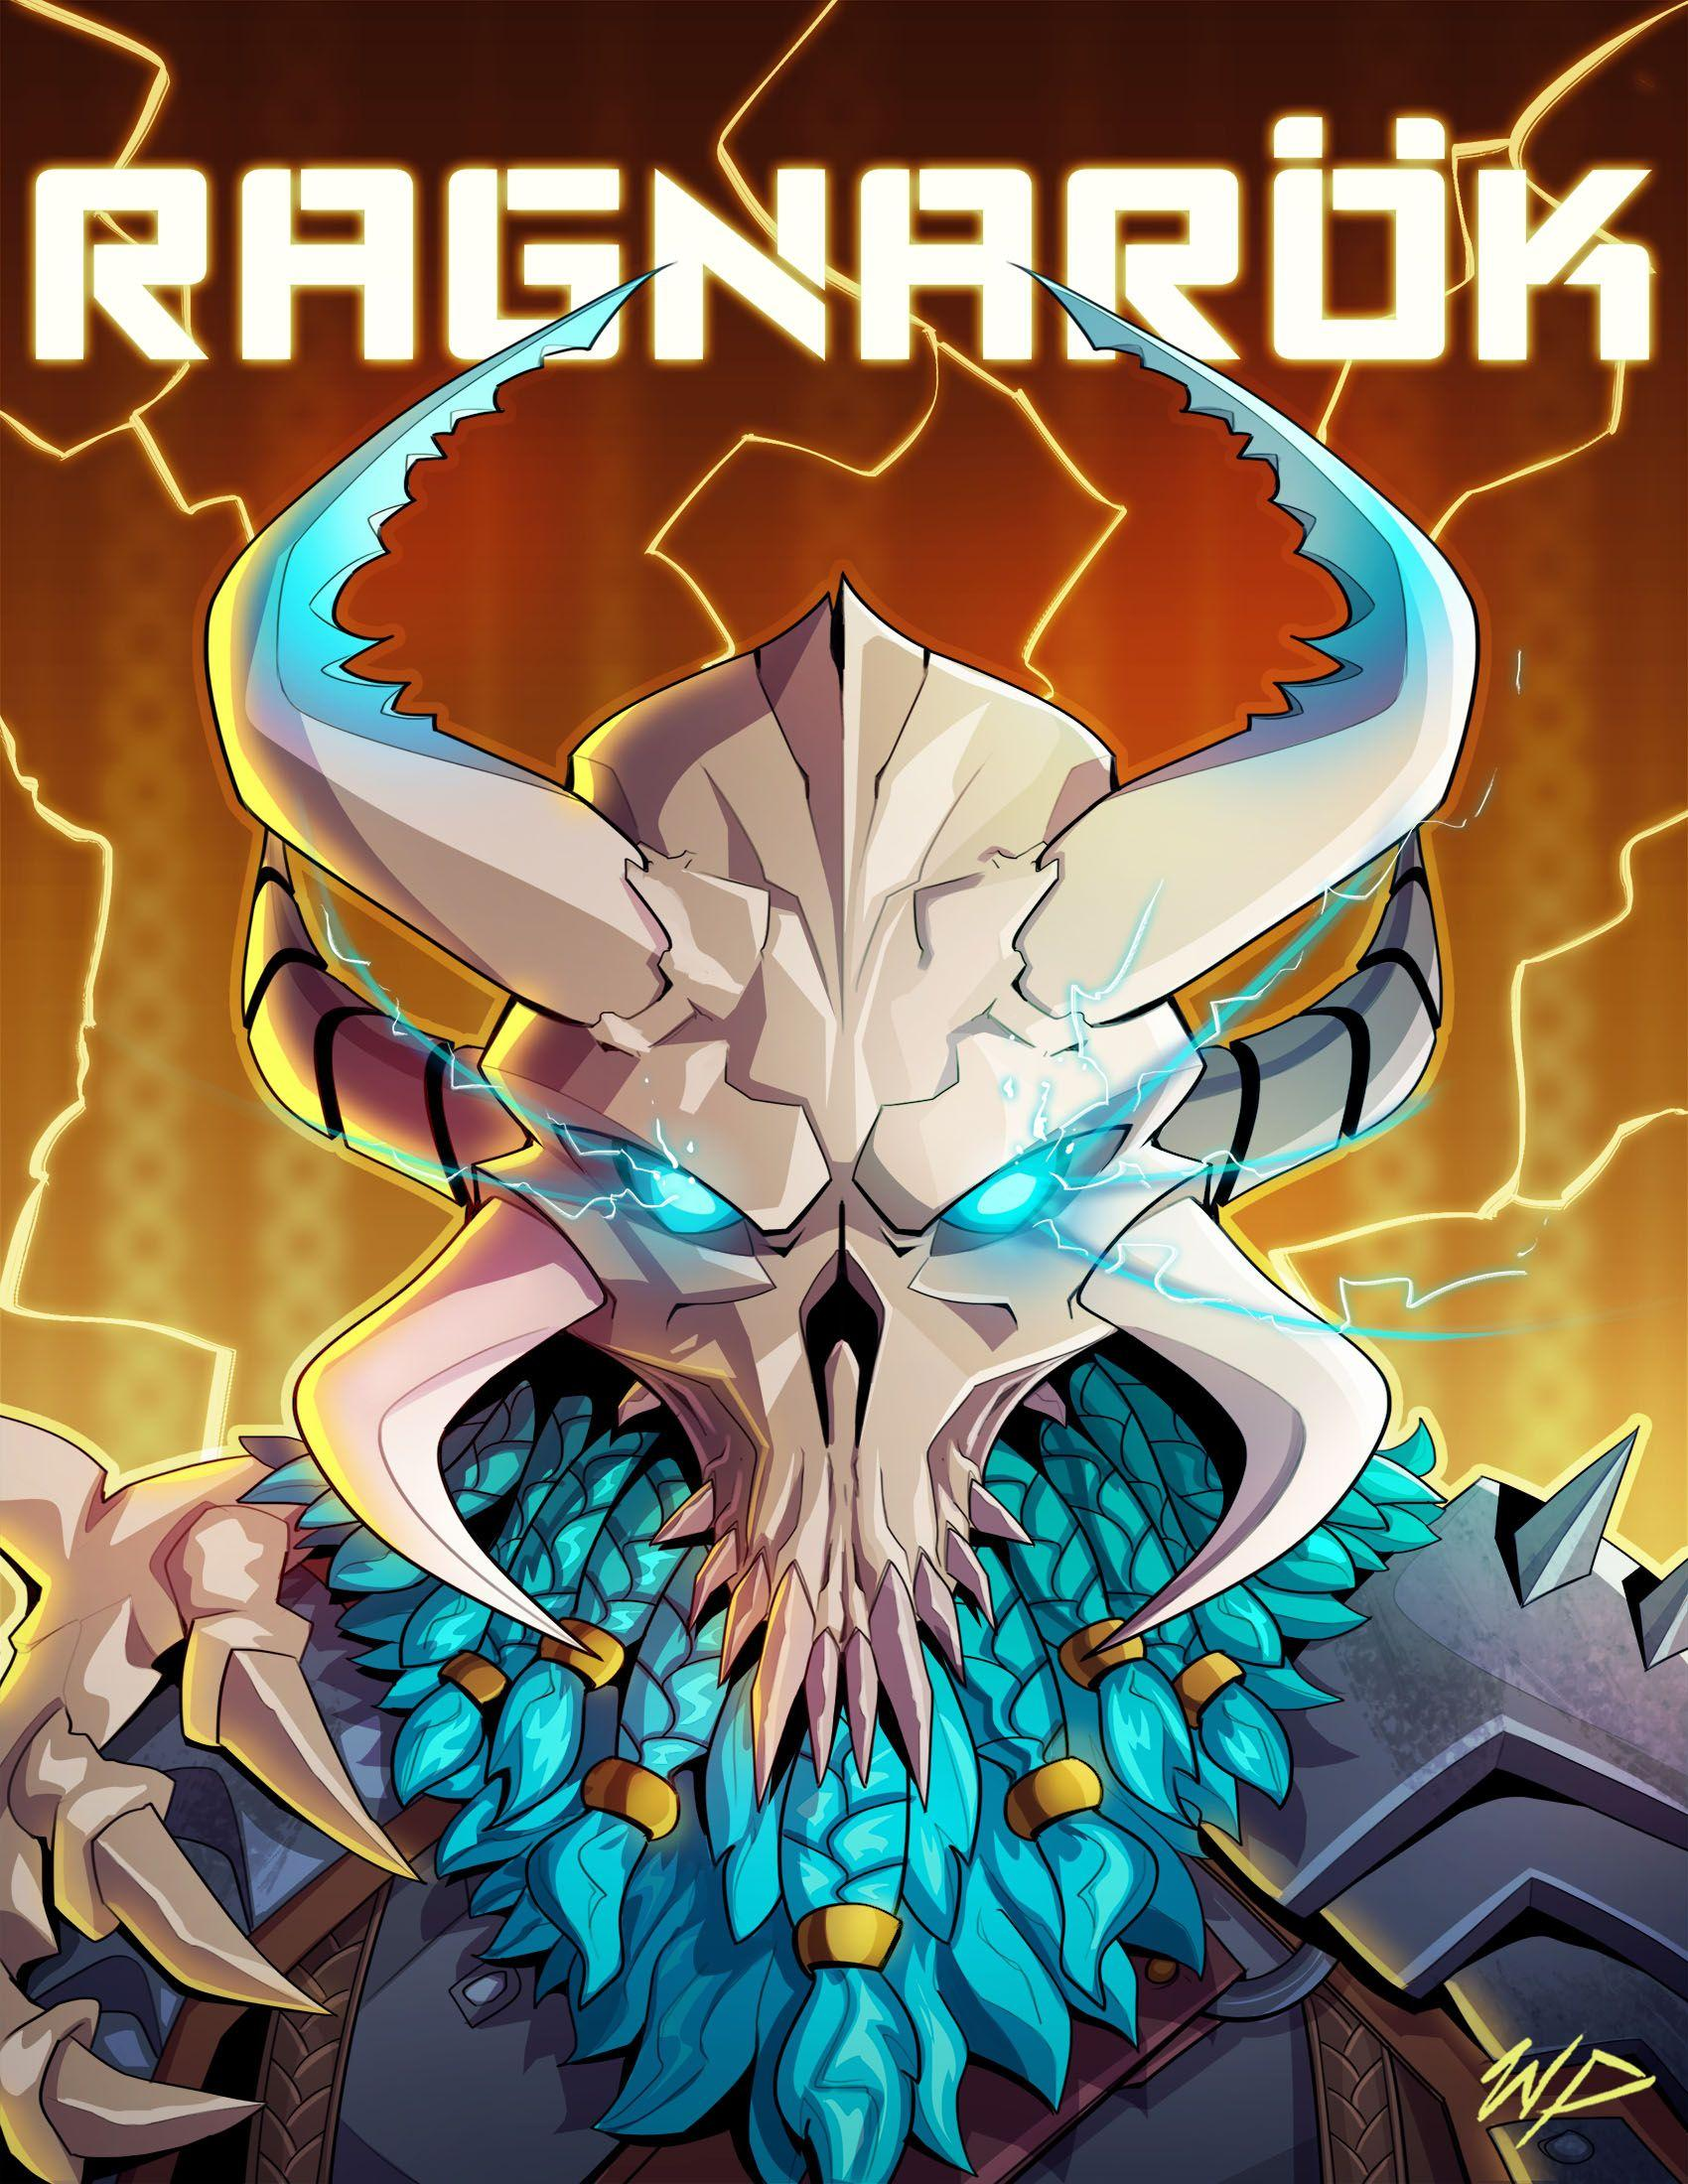 Ragnarok Cool Fortnite Wallpaper - Game Art by Puekkers #4416 ...